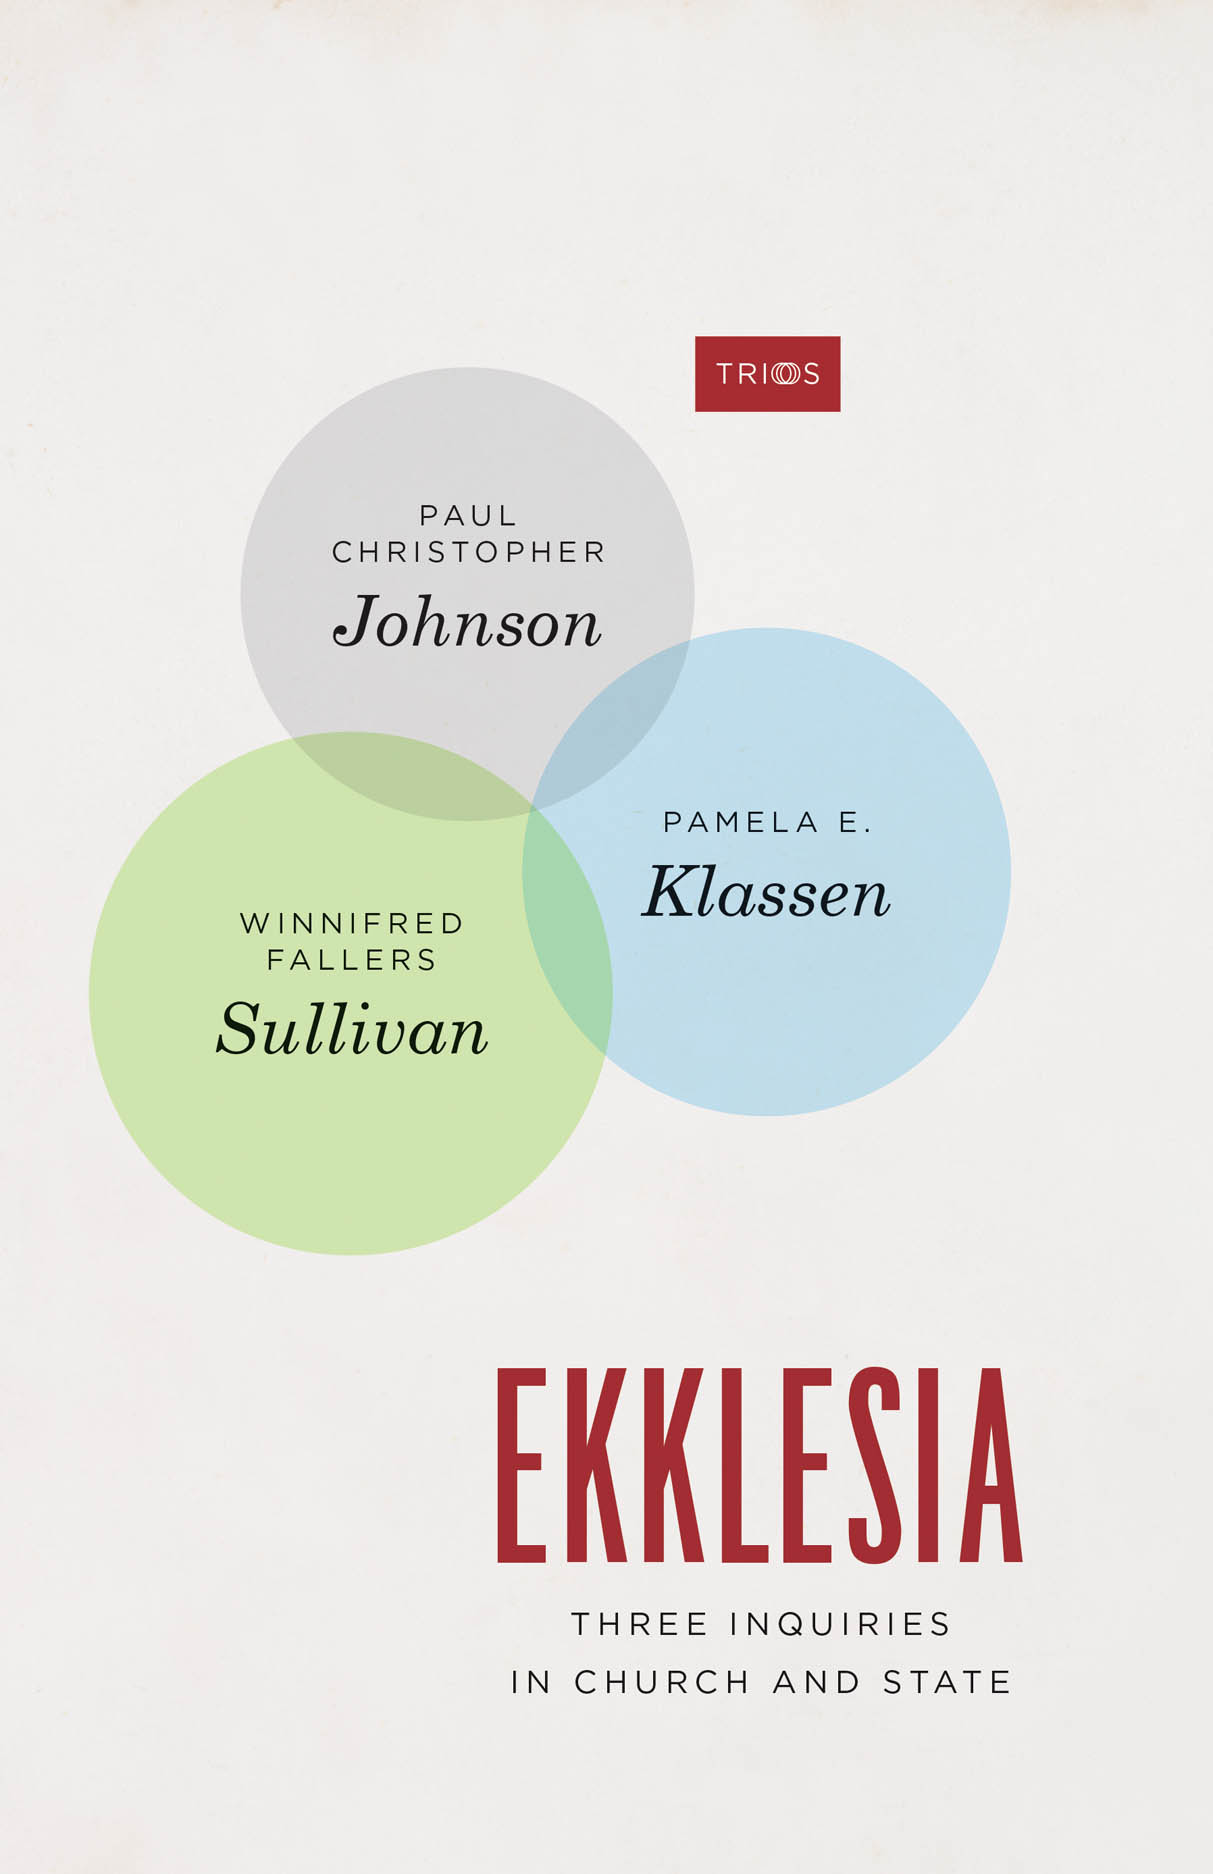 Ekklesia: Three Inquiries in Church and State